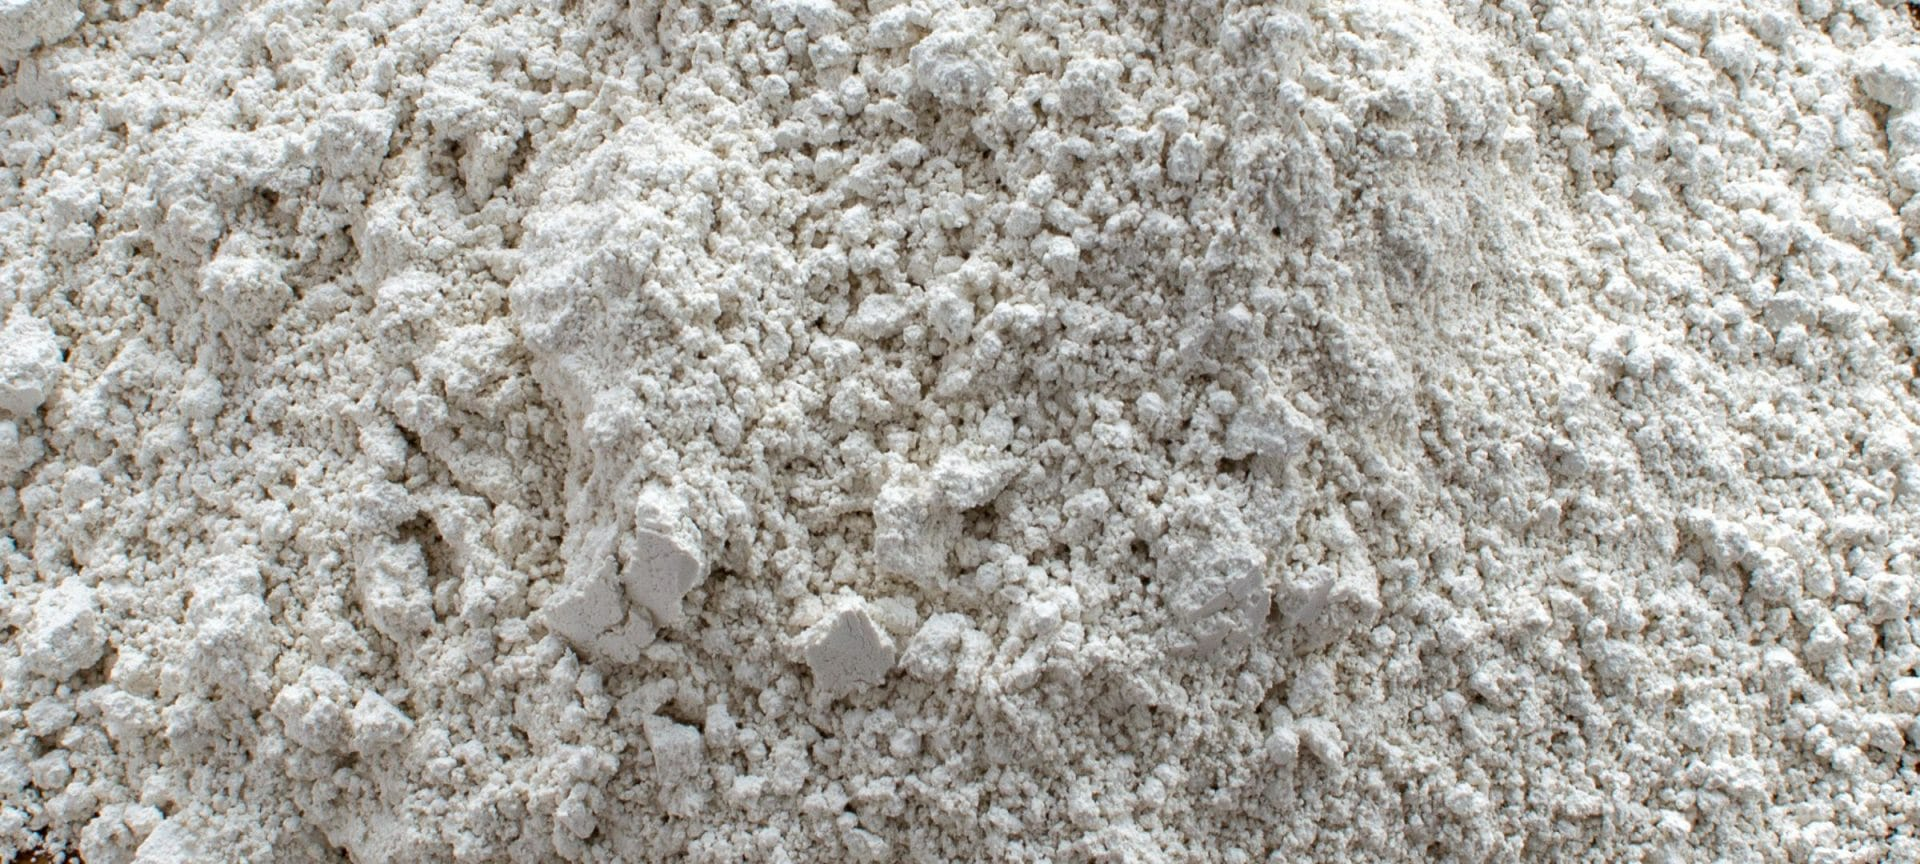 Global Calcined Diatomite Market 2020 Competitive Analysis – Imerys, Jilin  Yuan Tong Mineral, EP Minerals, Showa Chemical – The Daily Chronicle